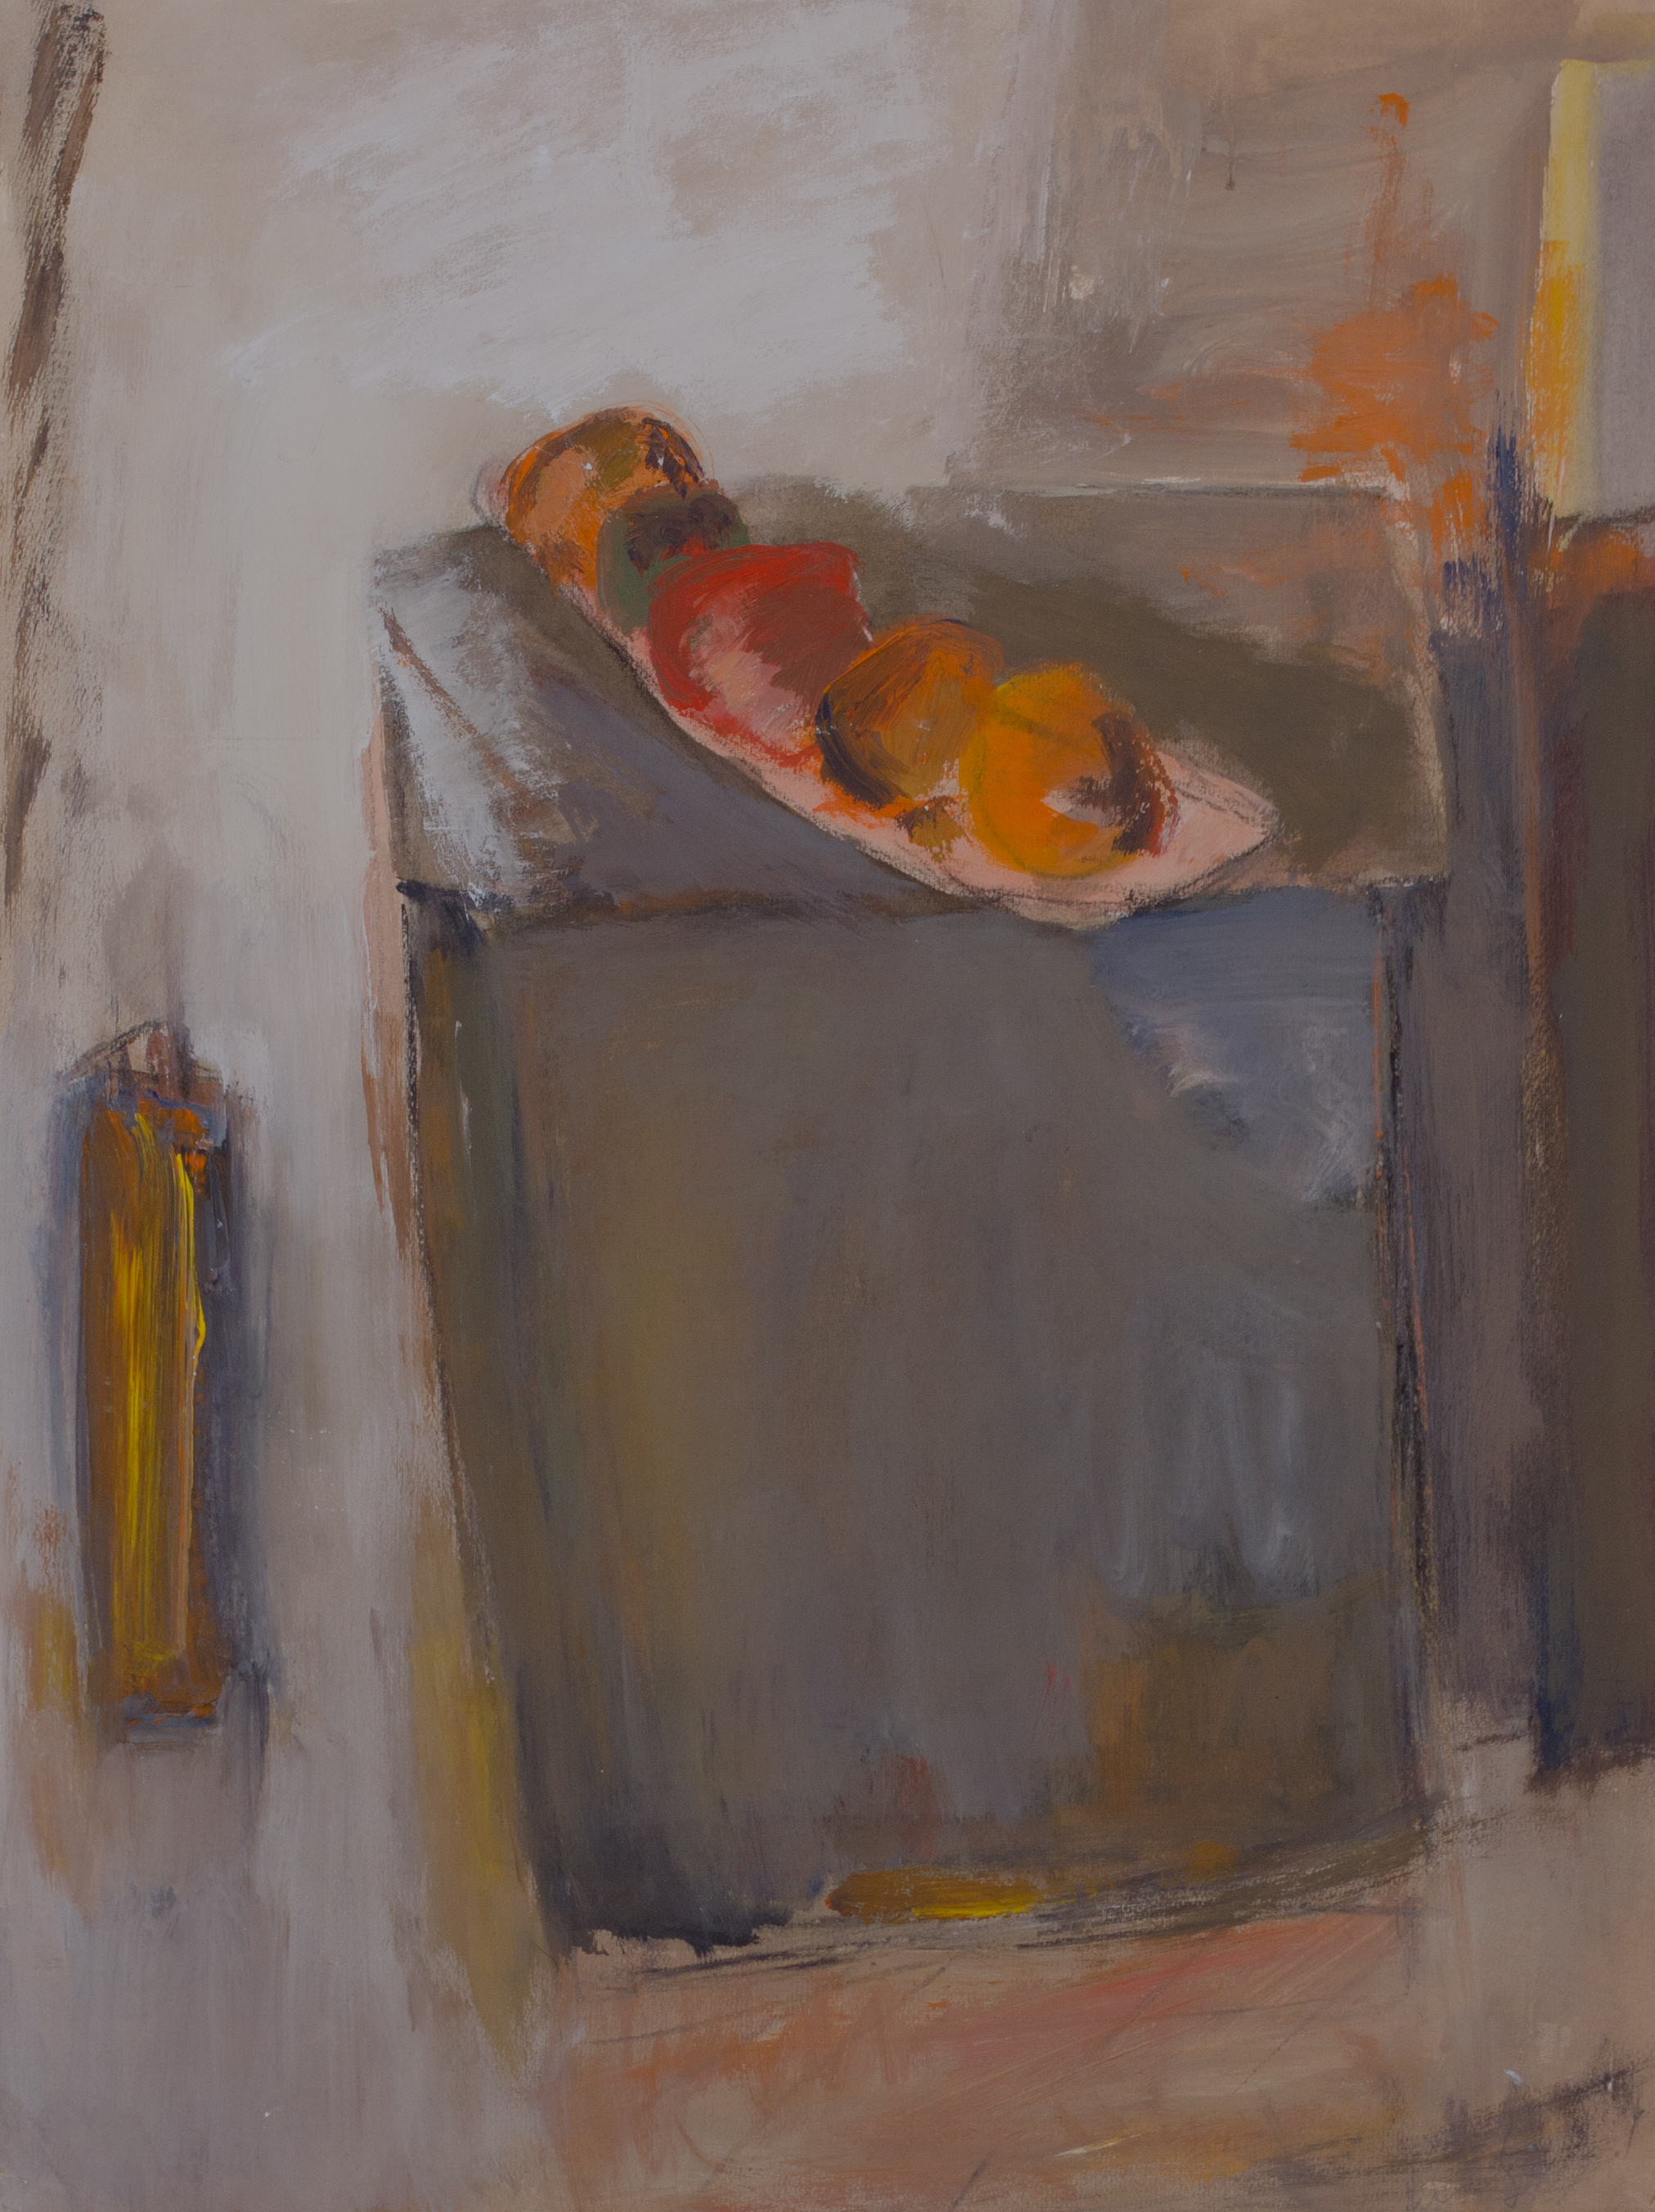 Painting: Still Life 2 (#37) by Eleanor Hilowitz (1913 - 2007)